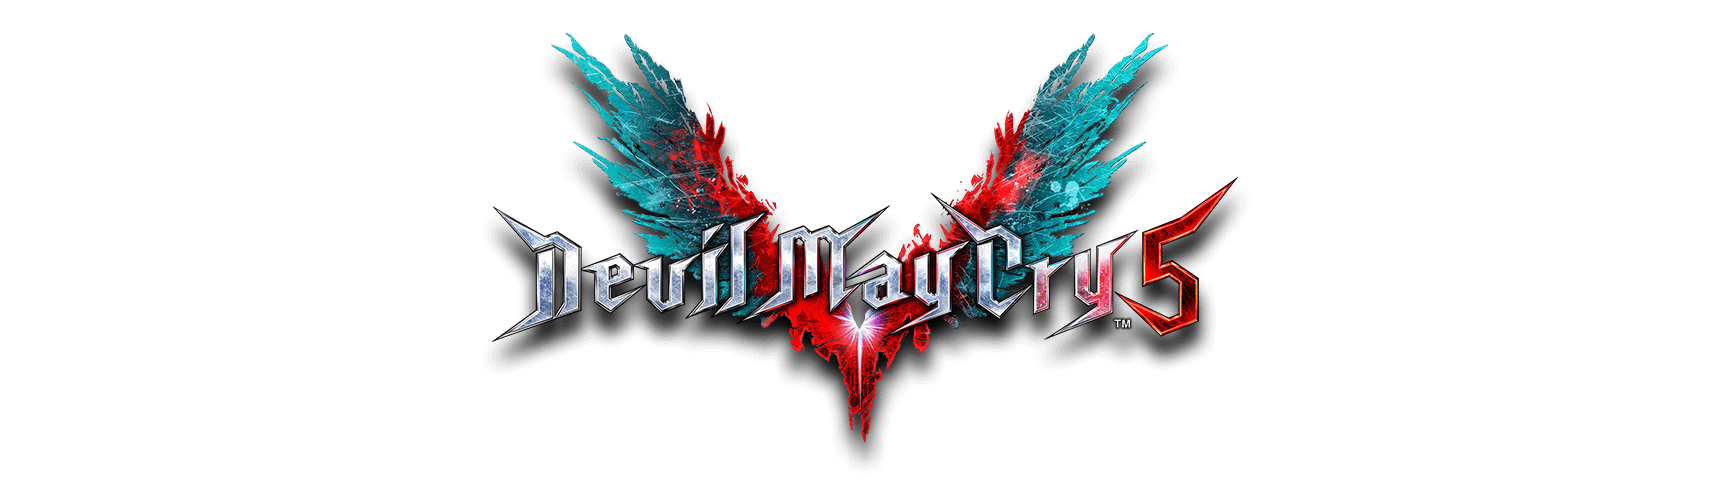 Devil May Cry 5 logo